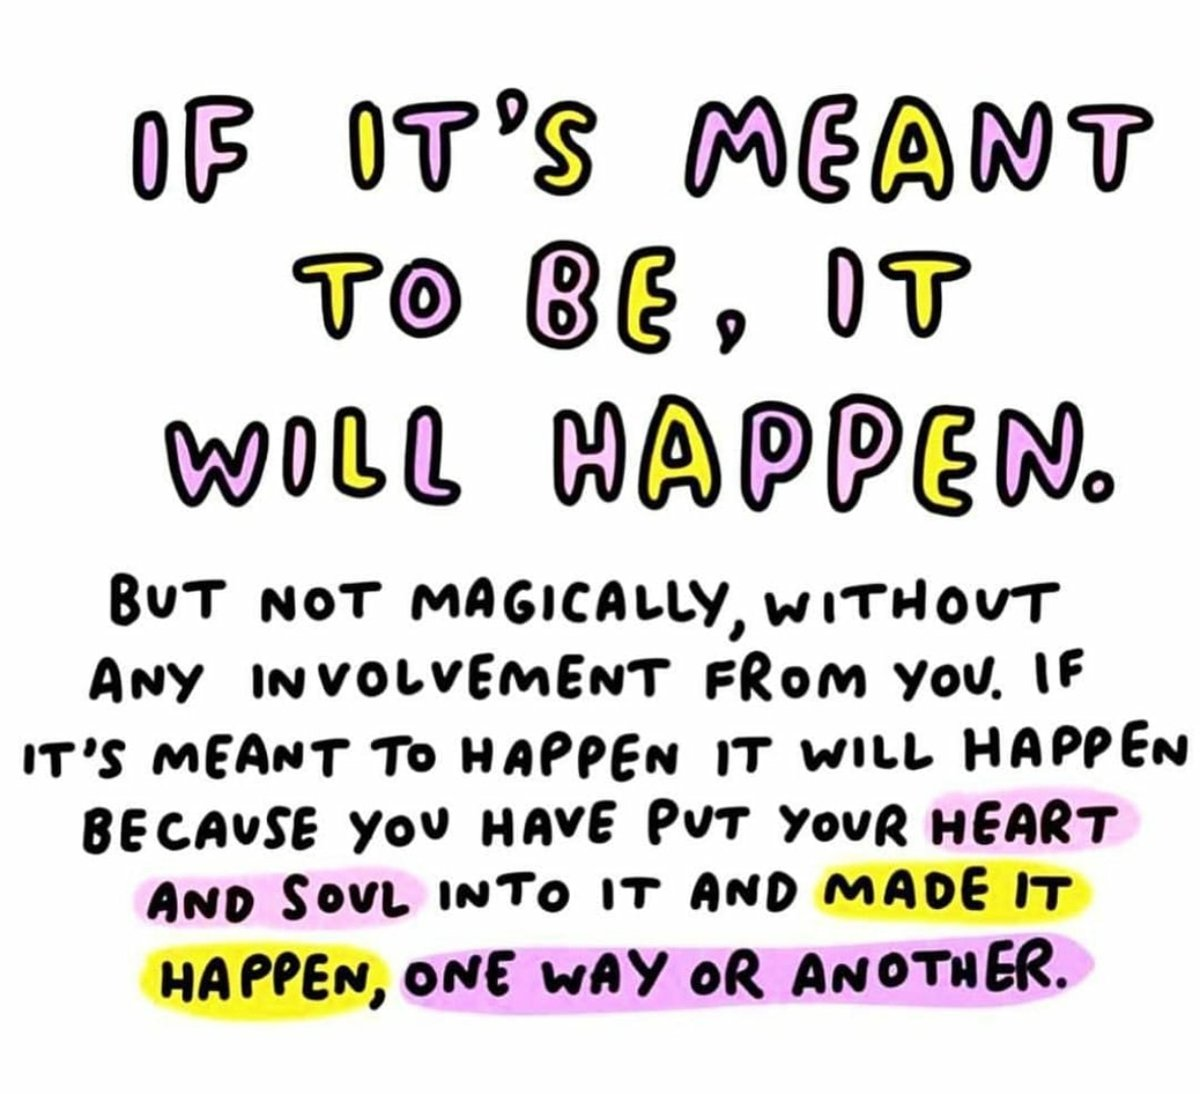 Love this! #TuesdayThoughts #ChooseFostering #TransformLives #TuesdayMotivationpic.twitter.com/pnGi7MSswt